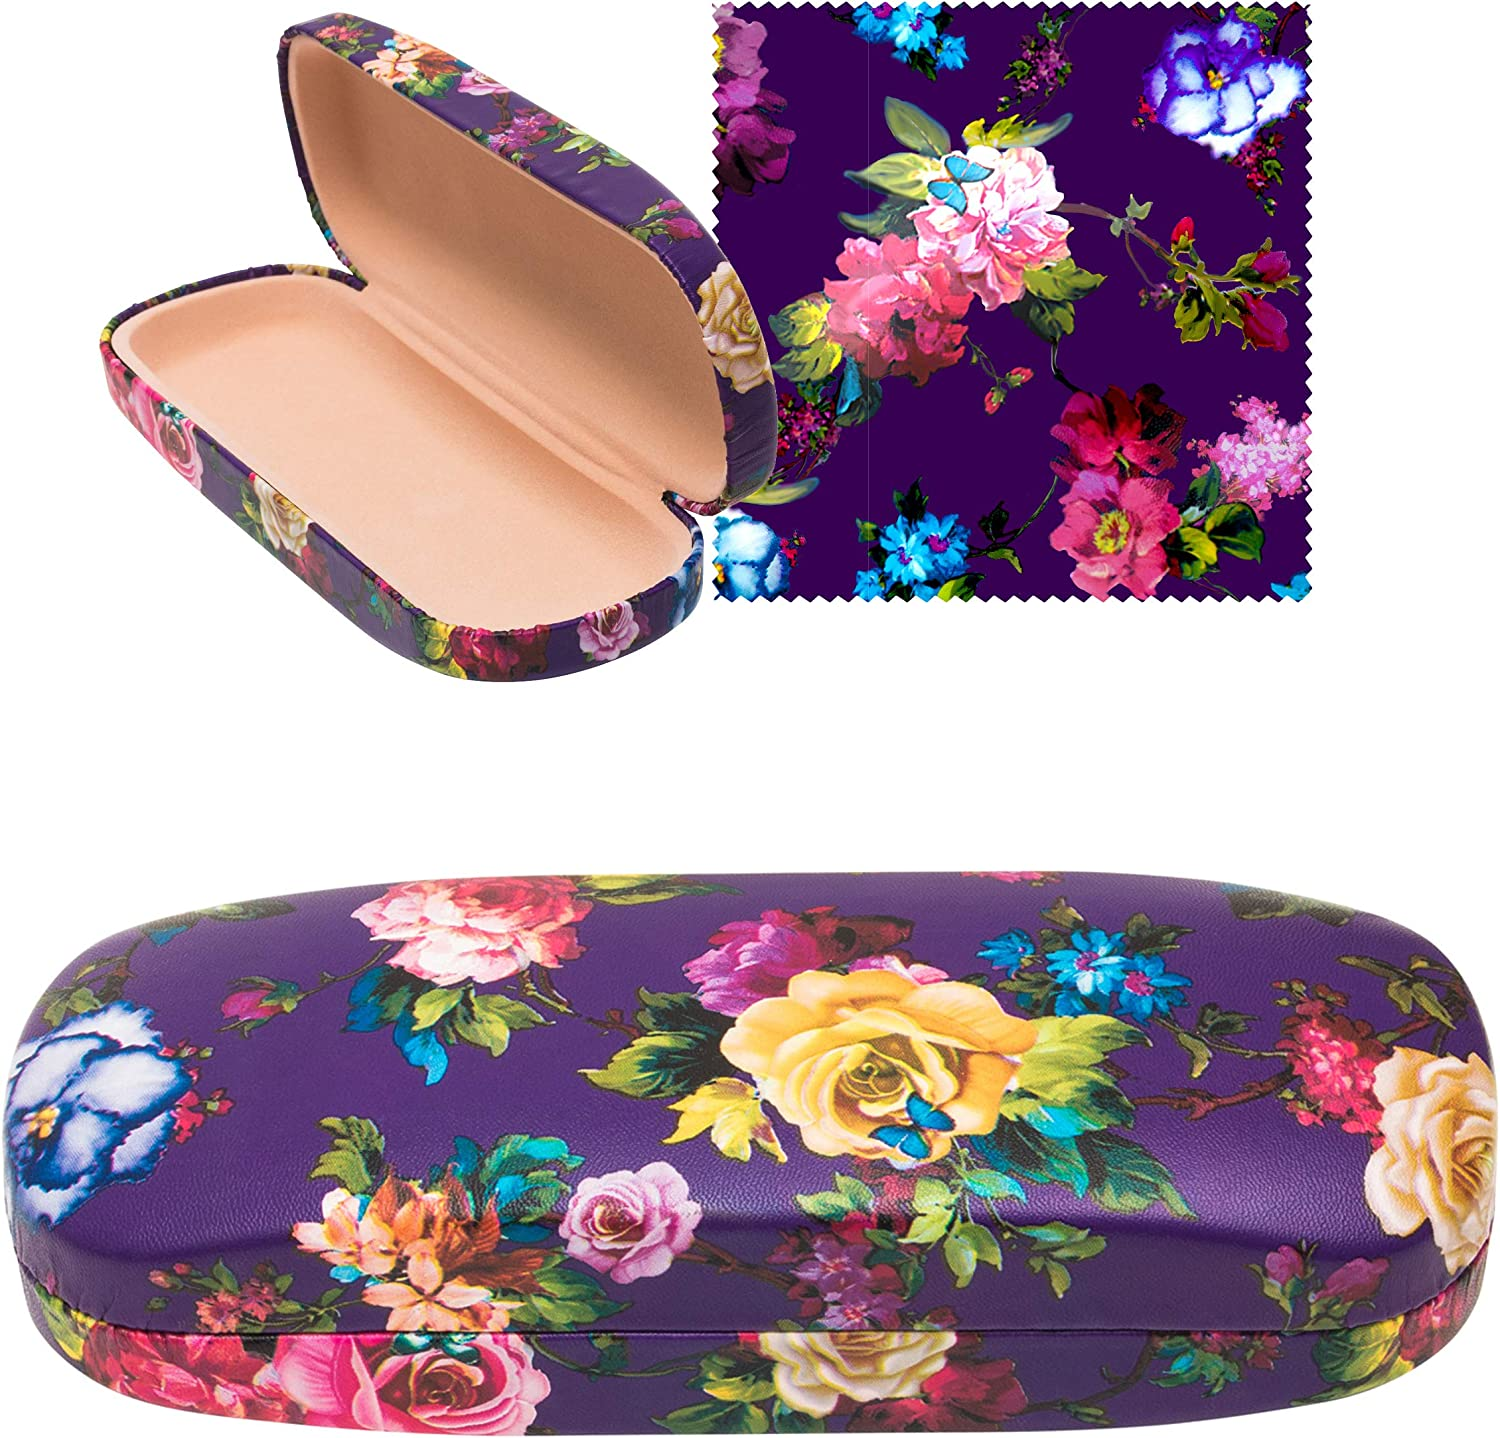 Floral Hard Shell Eyeglass Case Holder with Matching Microfiber Cleaning Cloth